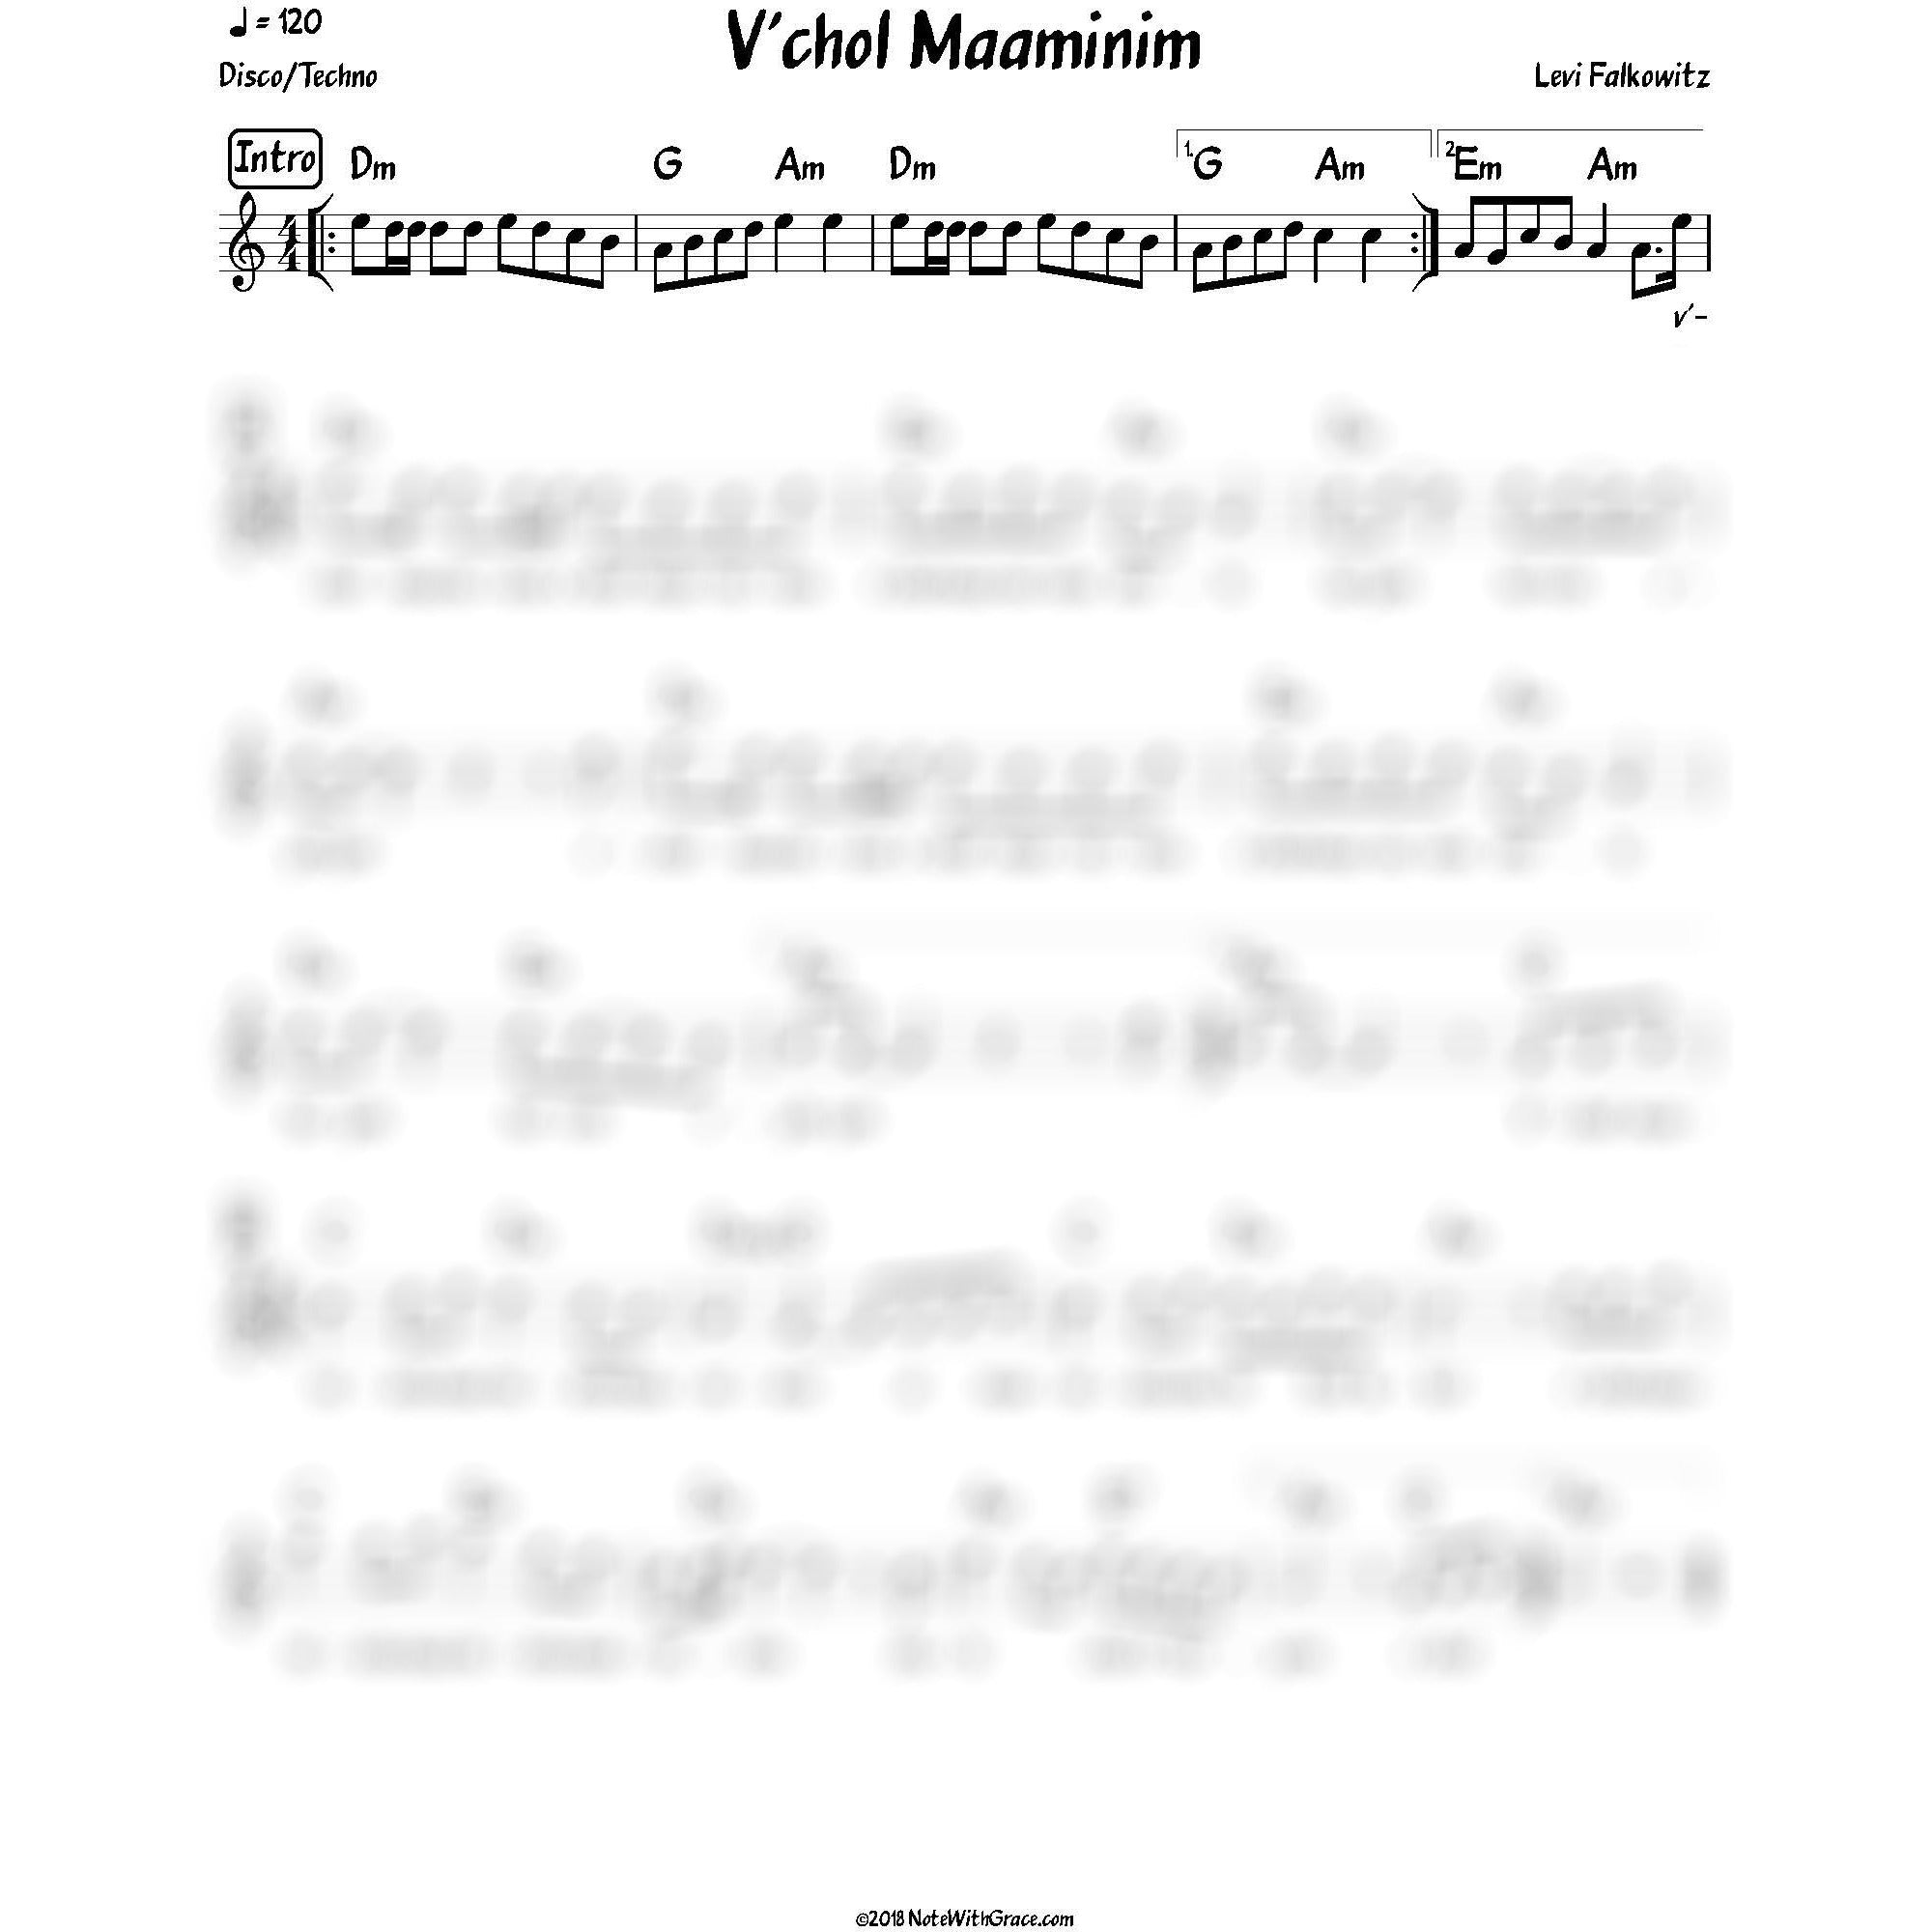 V'chol Maaminim Lead Sheet (Levy Falkowitz) Album: Toiv Lee-Sheet music-NoteWithGrace.com